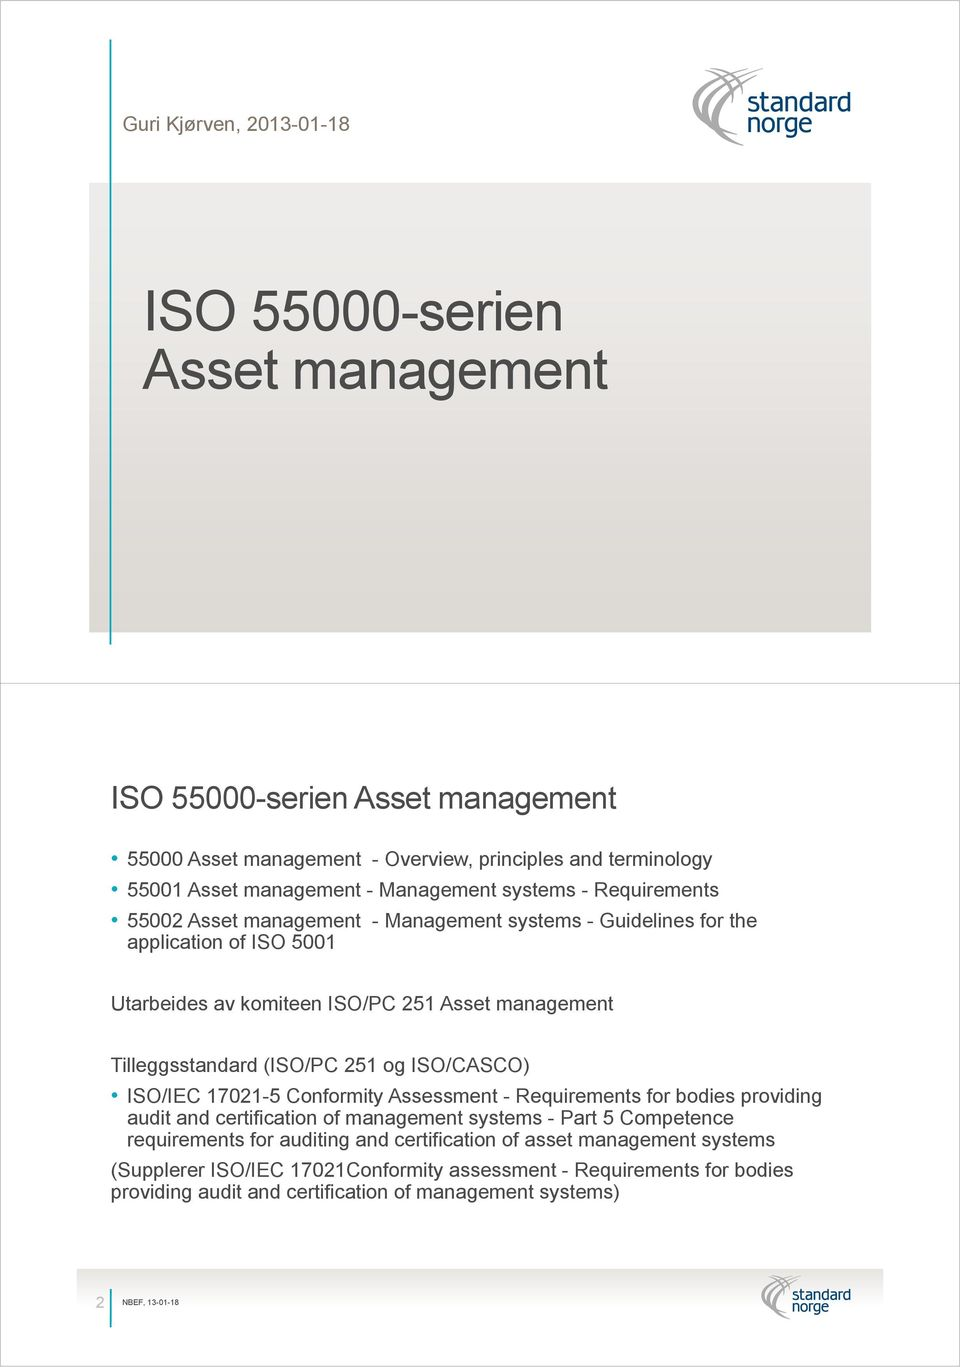 Tilleggsstandard (ISO/PC 251 og ISO/CASCO) ISO/IEC 17021-5 Conformity Assessment - Requirements for bodies providing audit and certification of management systems - Part 5 Competence